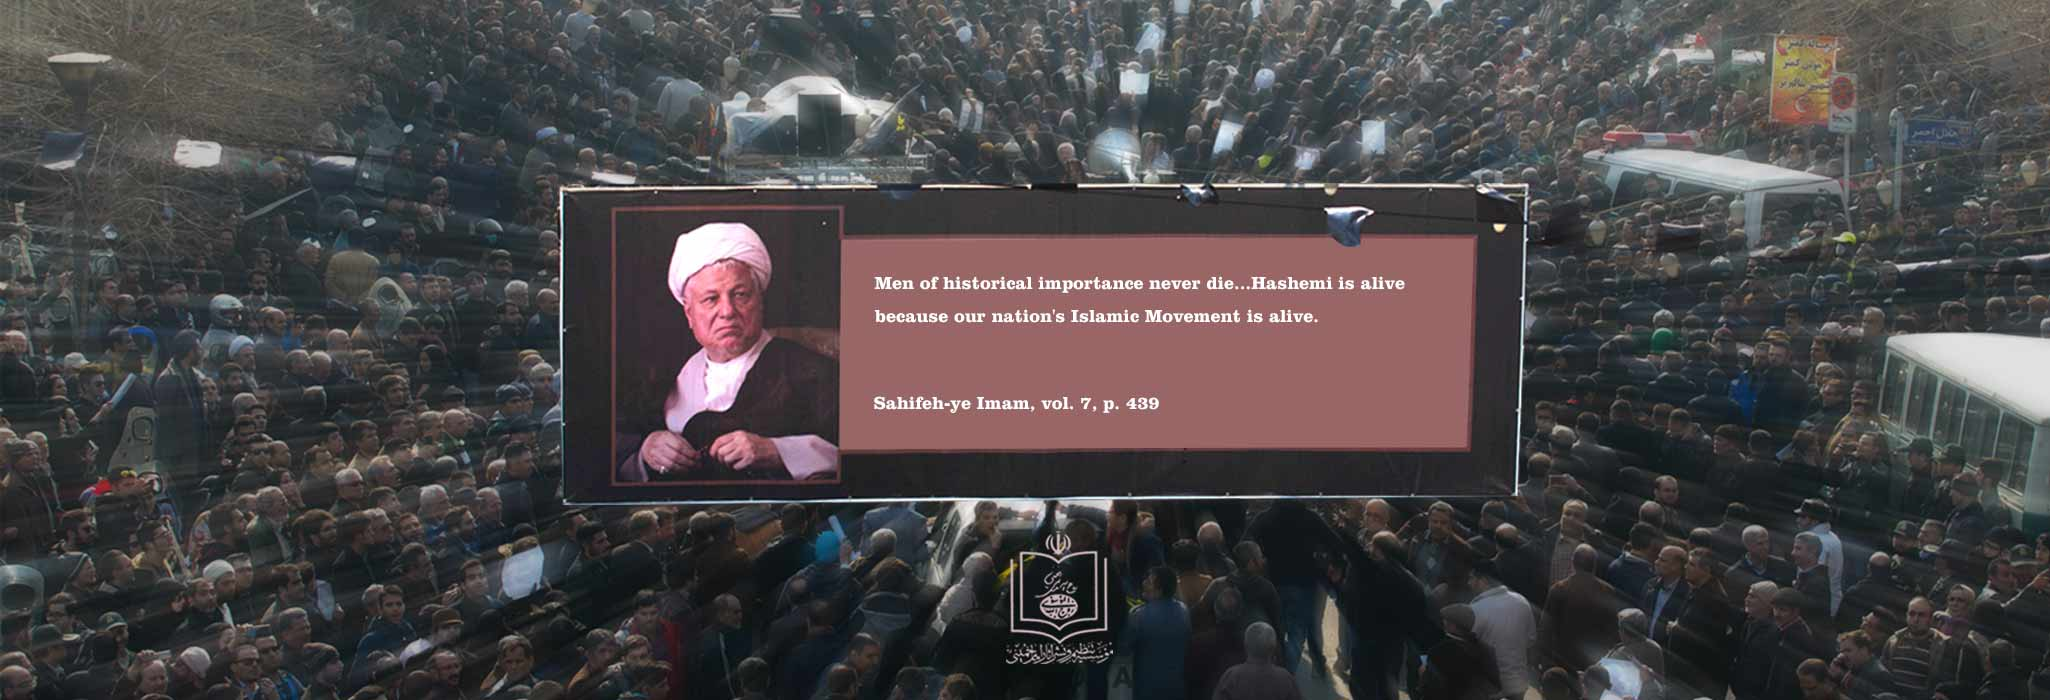 Men of historical importance never die...Hashemi is alive because our nation`s Islamic Movement is alive.  Sahifeh-ye Imam, vol. 7, p. 439